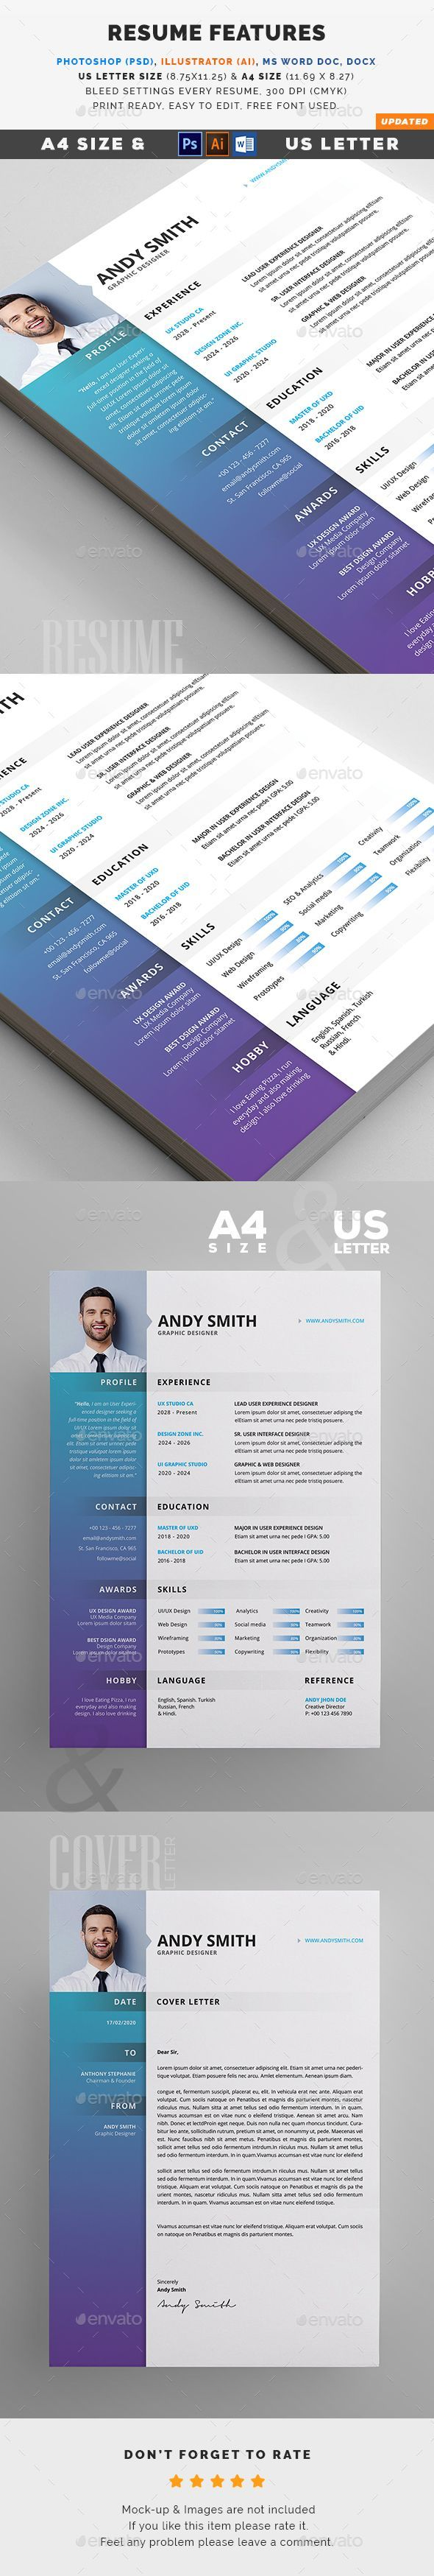 Resume FEATURES:      A4 & US Letter size with Bleed     Easy customizable and editable     300 DPI CMYK Print Ready!     100% Layered and Full Editable     04 PSD Files included     04 Ai Files included     04 Word Files (DOC) included     Help Guide Included     Print Ready Format     Images are not included in the download.  FONT:      Open Sans